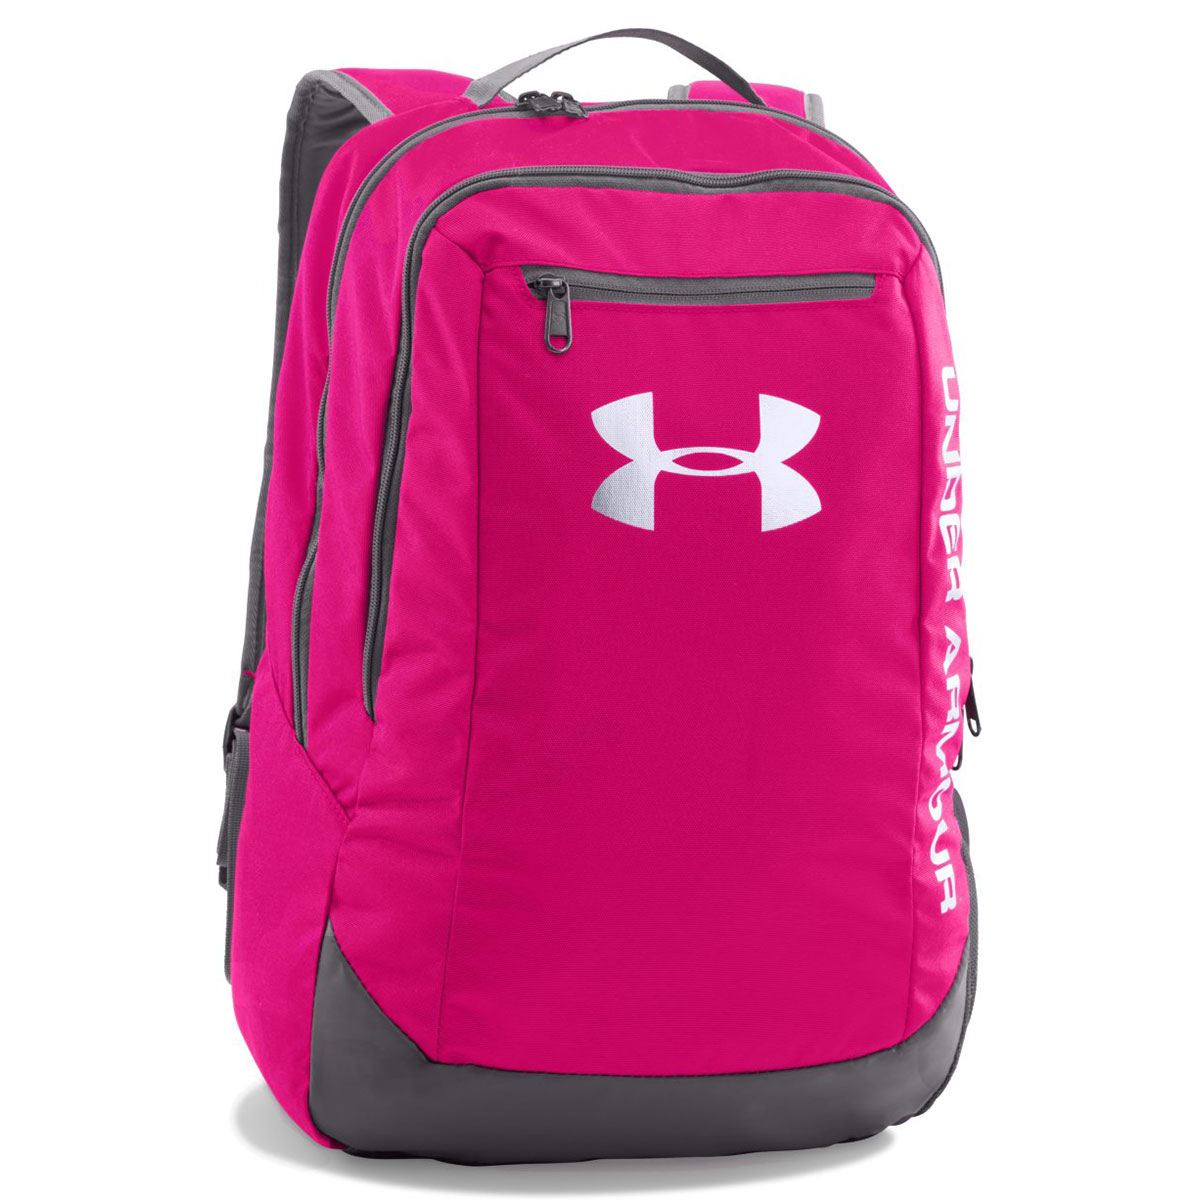 under armour gym bag pink cheap   OFF76% The Largest Catalog Discounts dafc6acfdc0b3